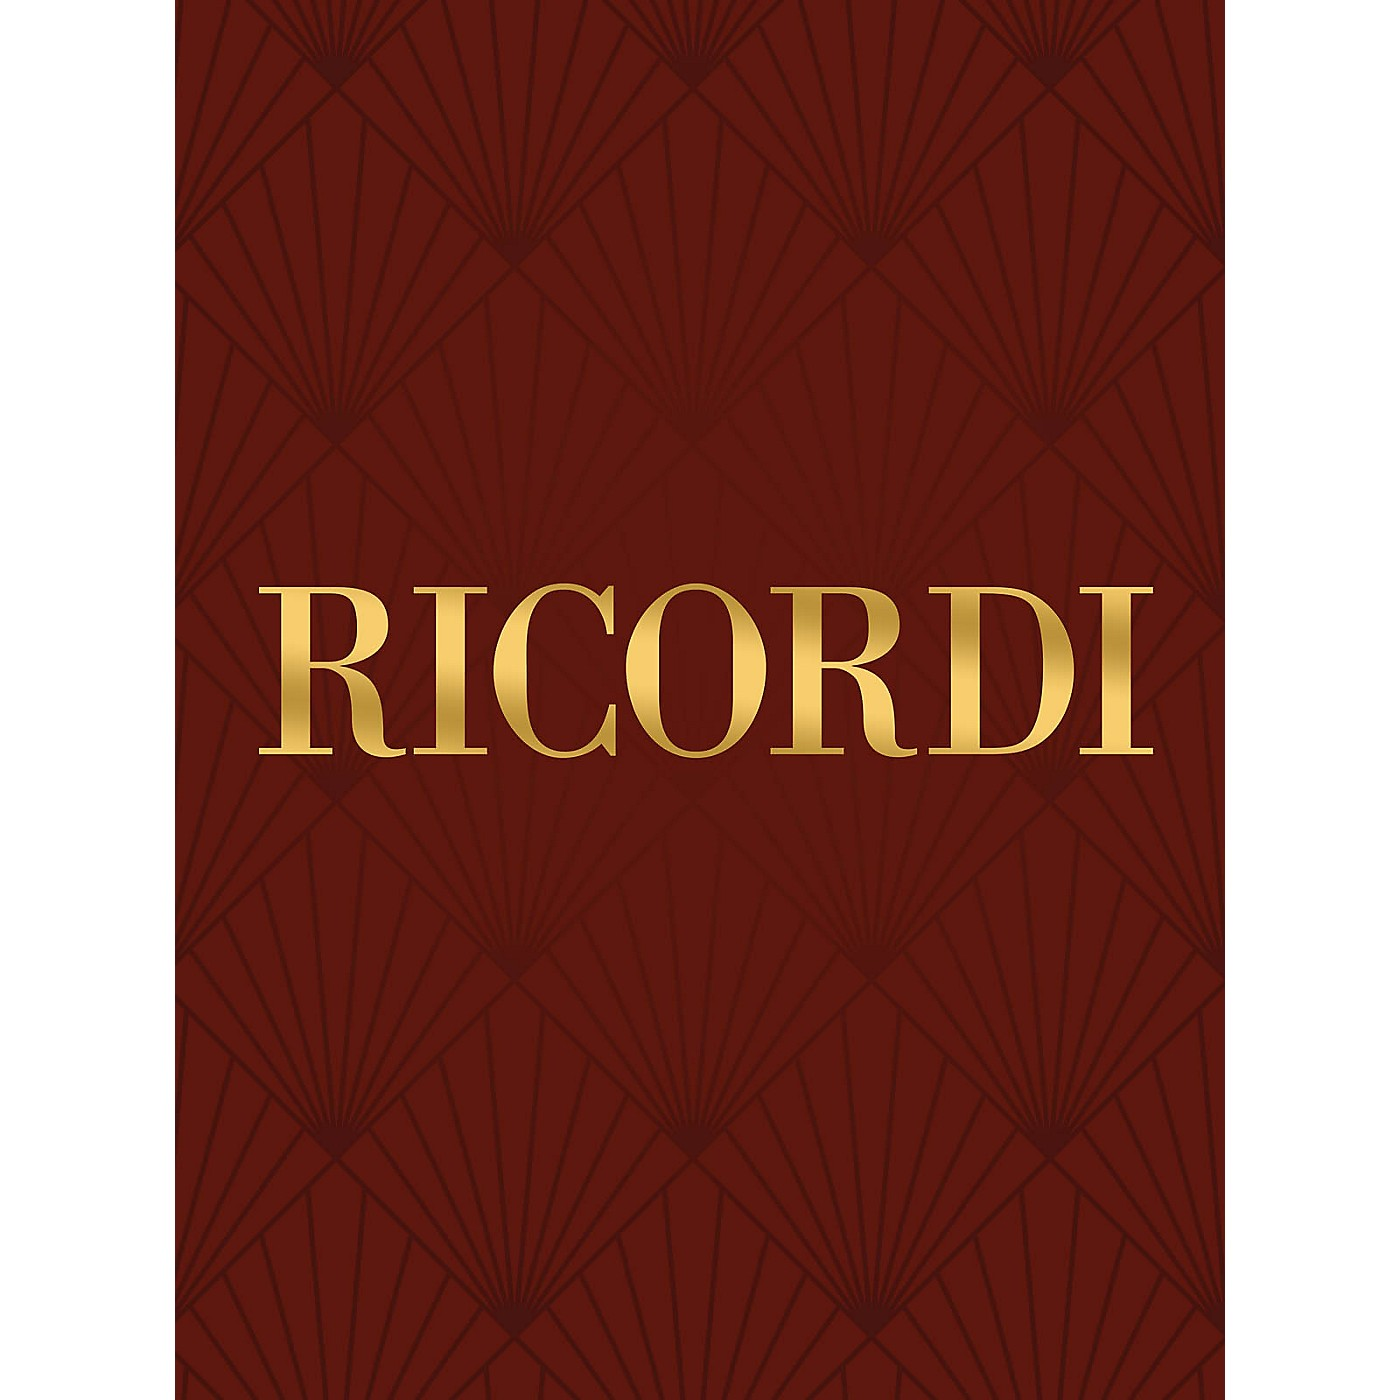 Ricordi Sonatas Vol. 3 (Nos. 24-32) Critical Edition, It/sp/pr Piano Collection by Beethoven Edited by A. Casella thumbnail